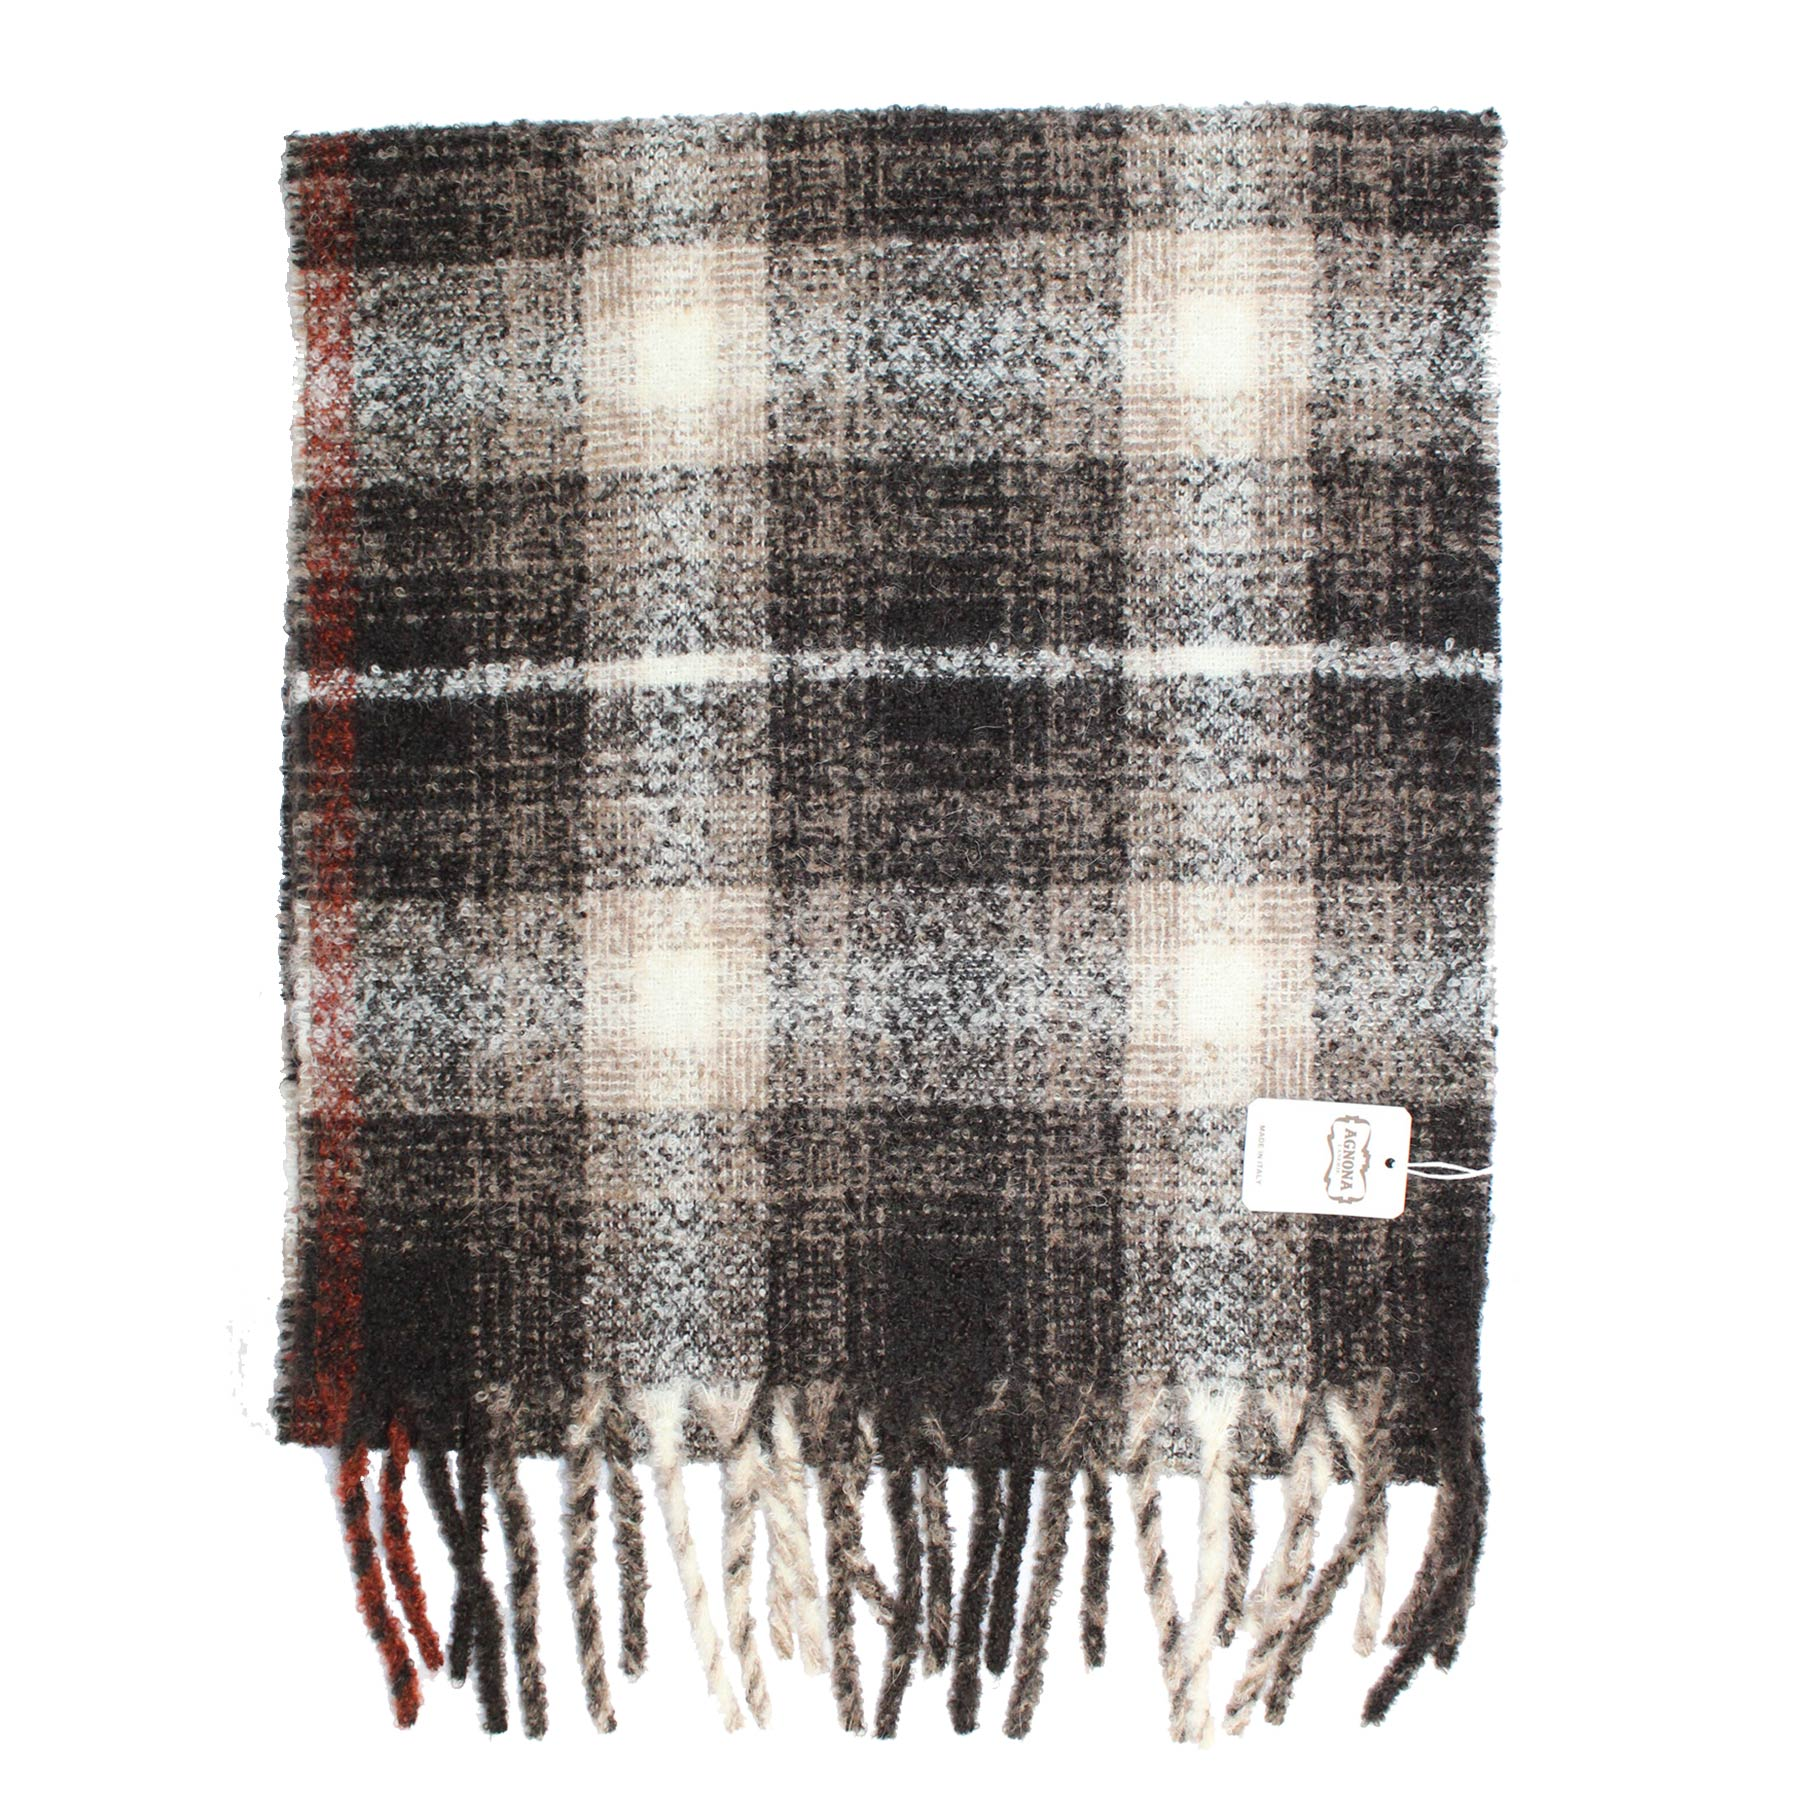 Agnona Scarf Taupe Black White Check Plaid - Cashmere Alpaca Shawl SALE